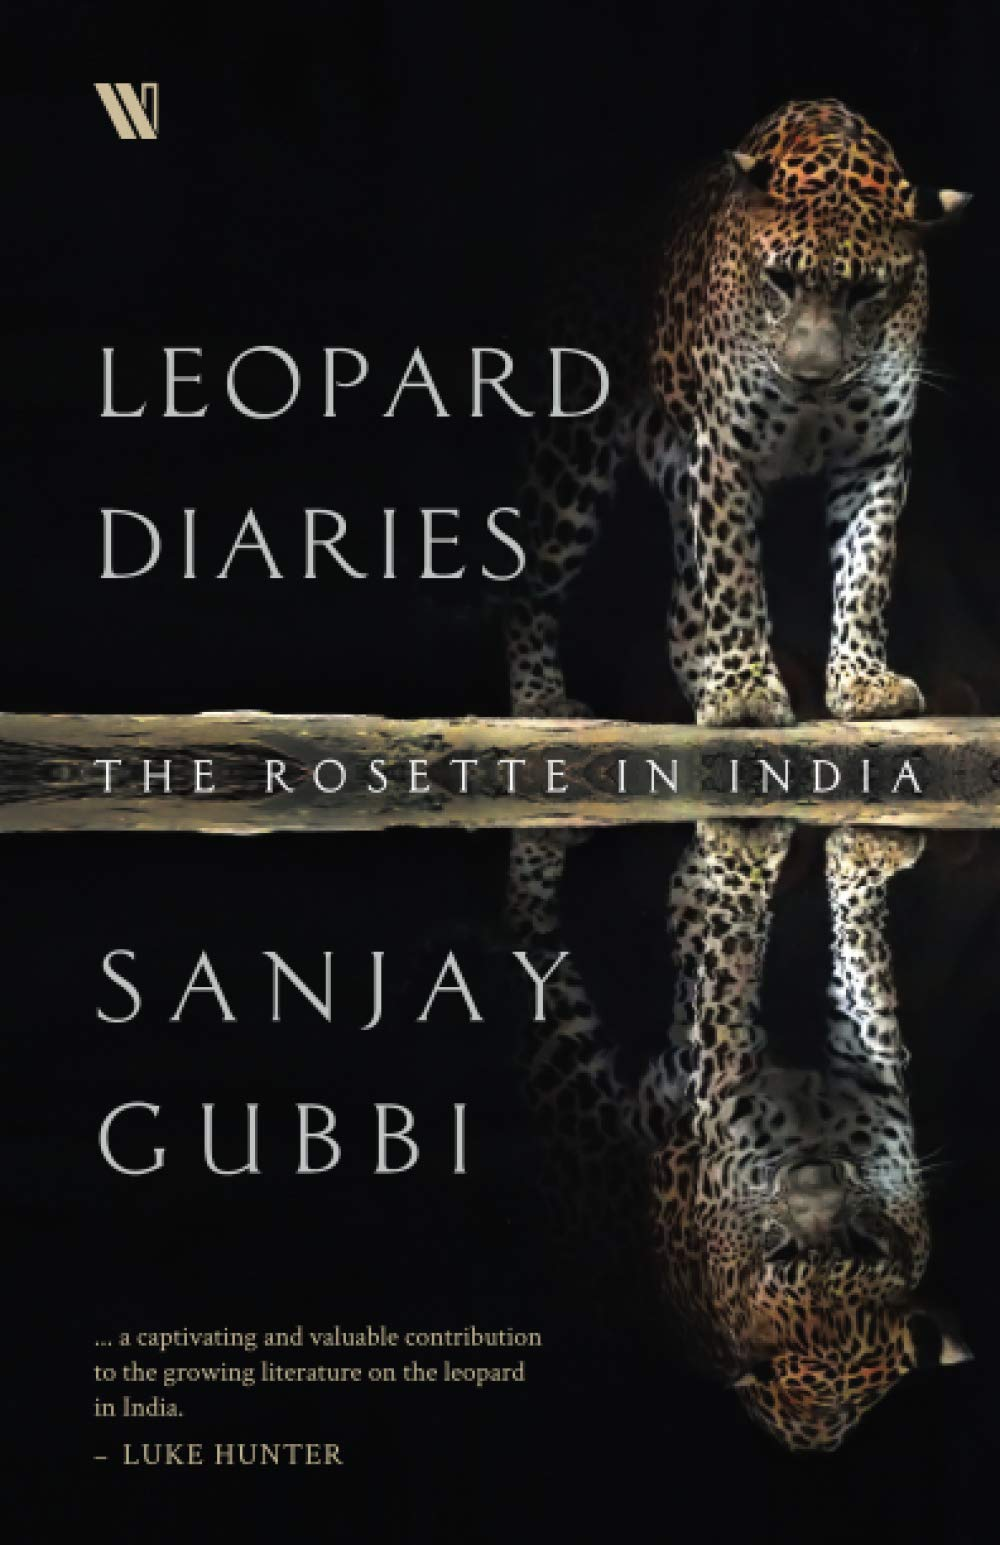 School Megamart 2021: A book Titled 'Leopard Diaries – the Rosette in India' Released by Sanjay Gubbi